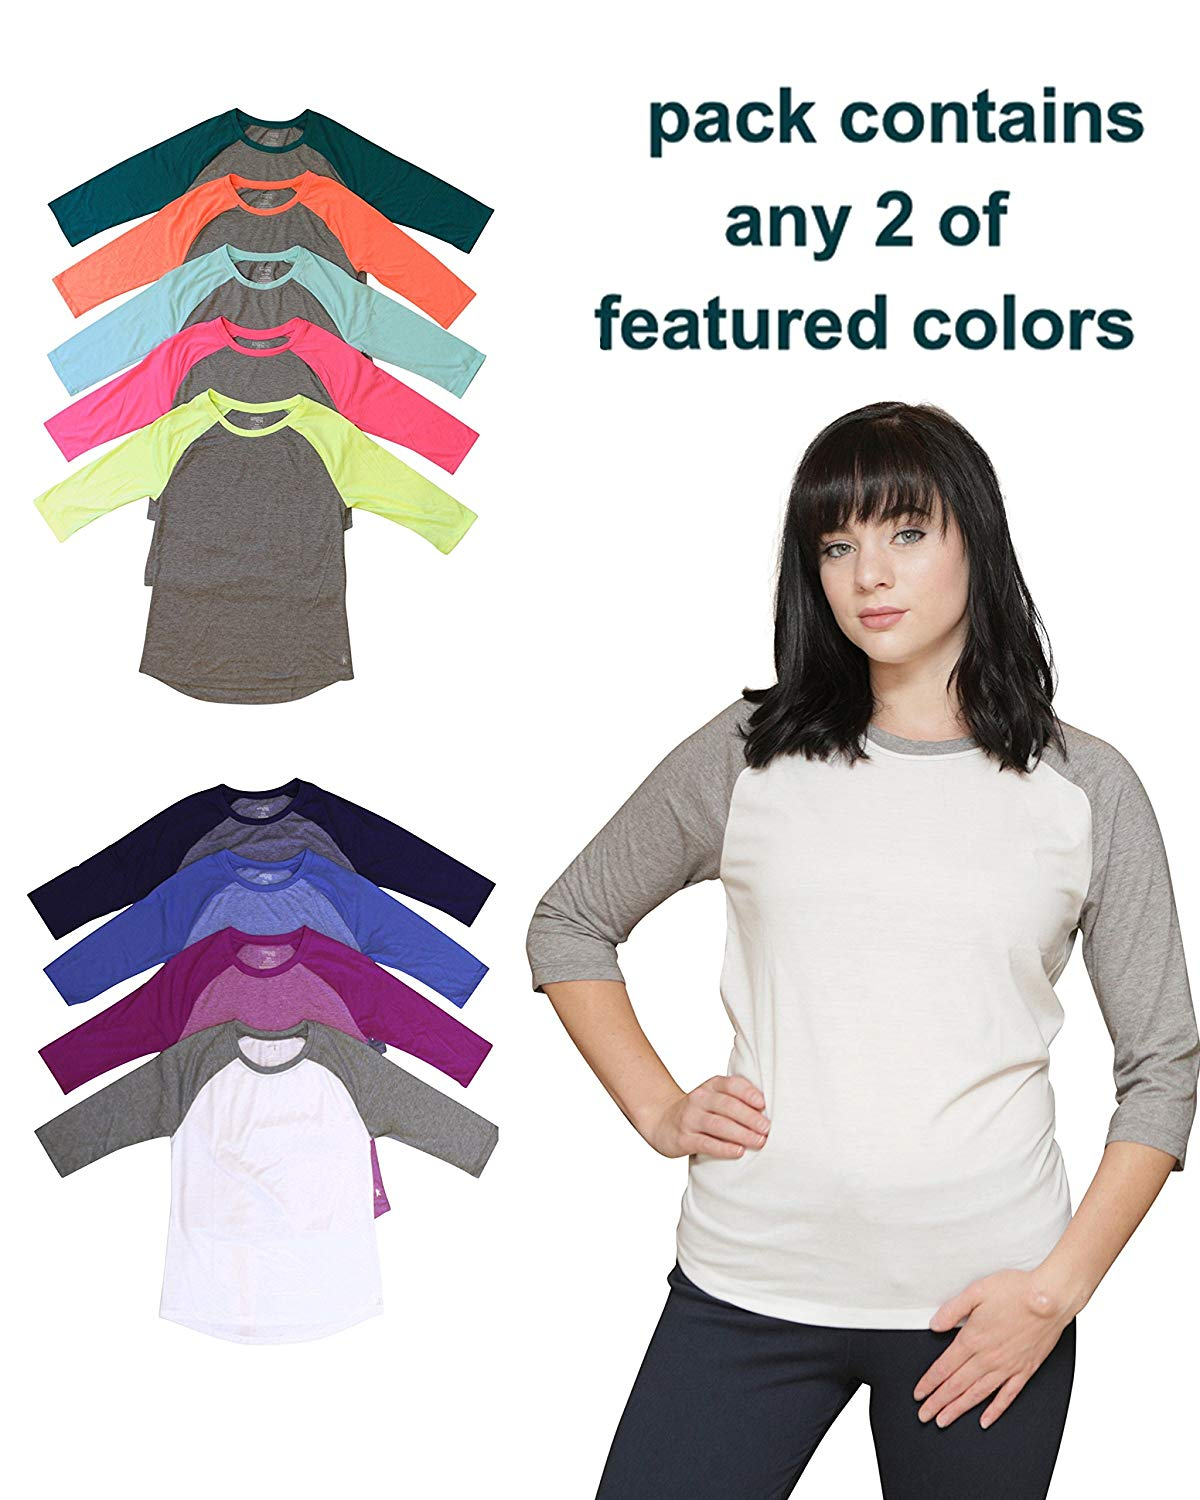 98a5add45c Get Quotations · Women's Danskin Now Dri-More Knit Two Color Raglan 3/4  Sleeve Shirts (